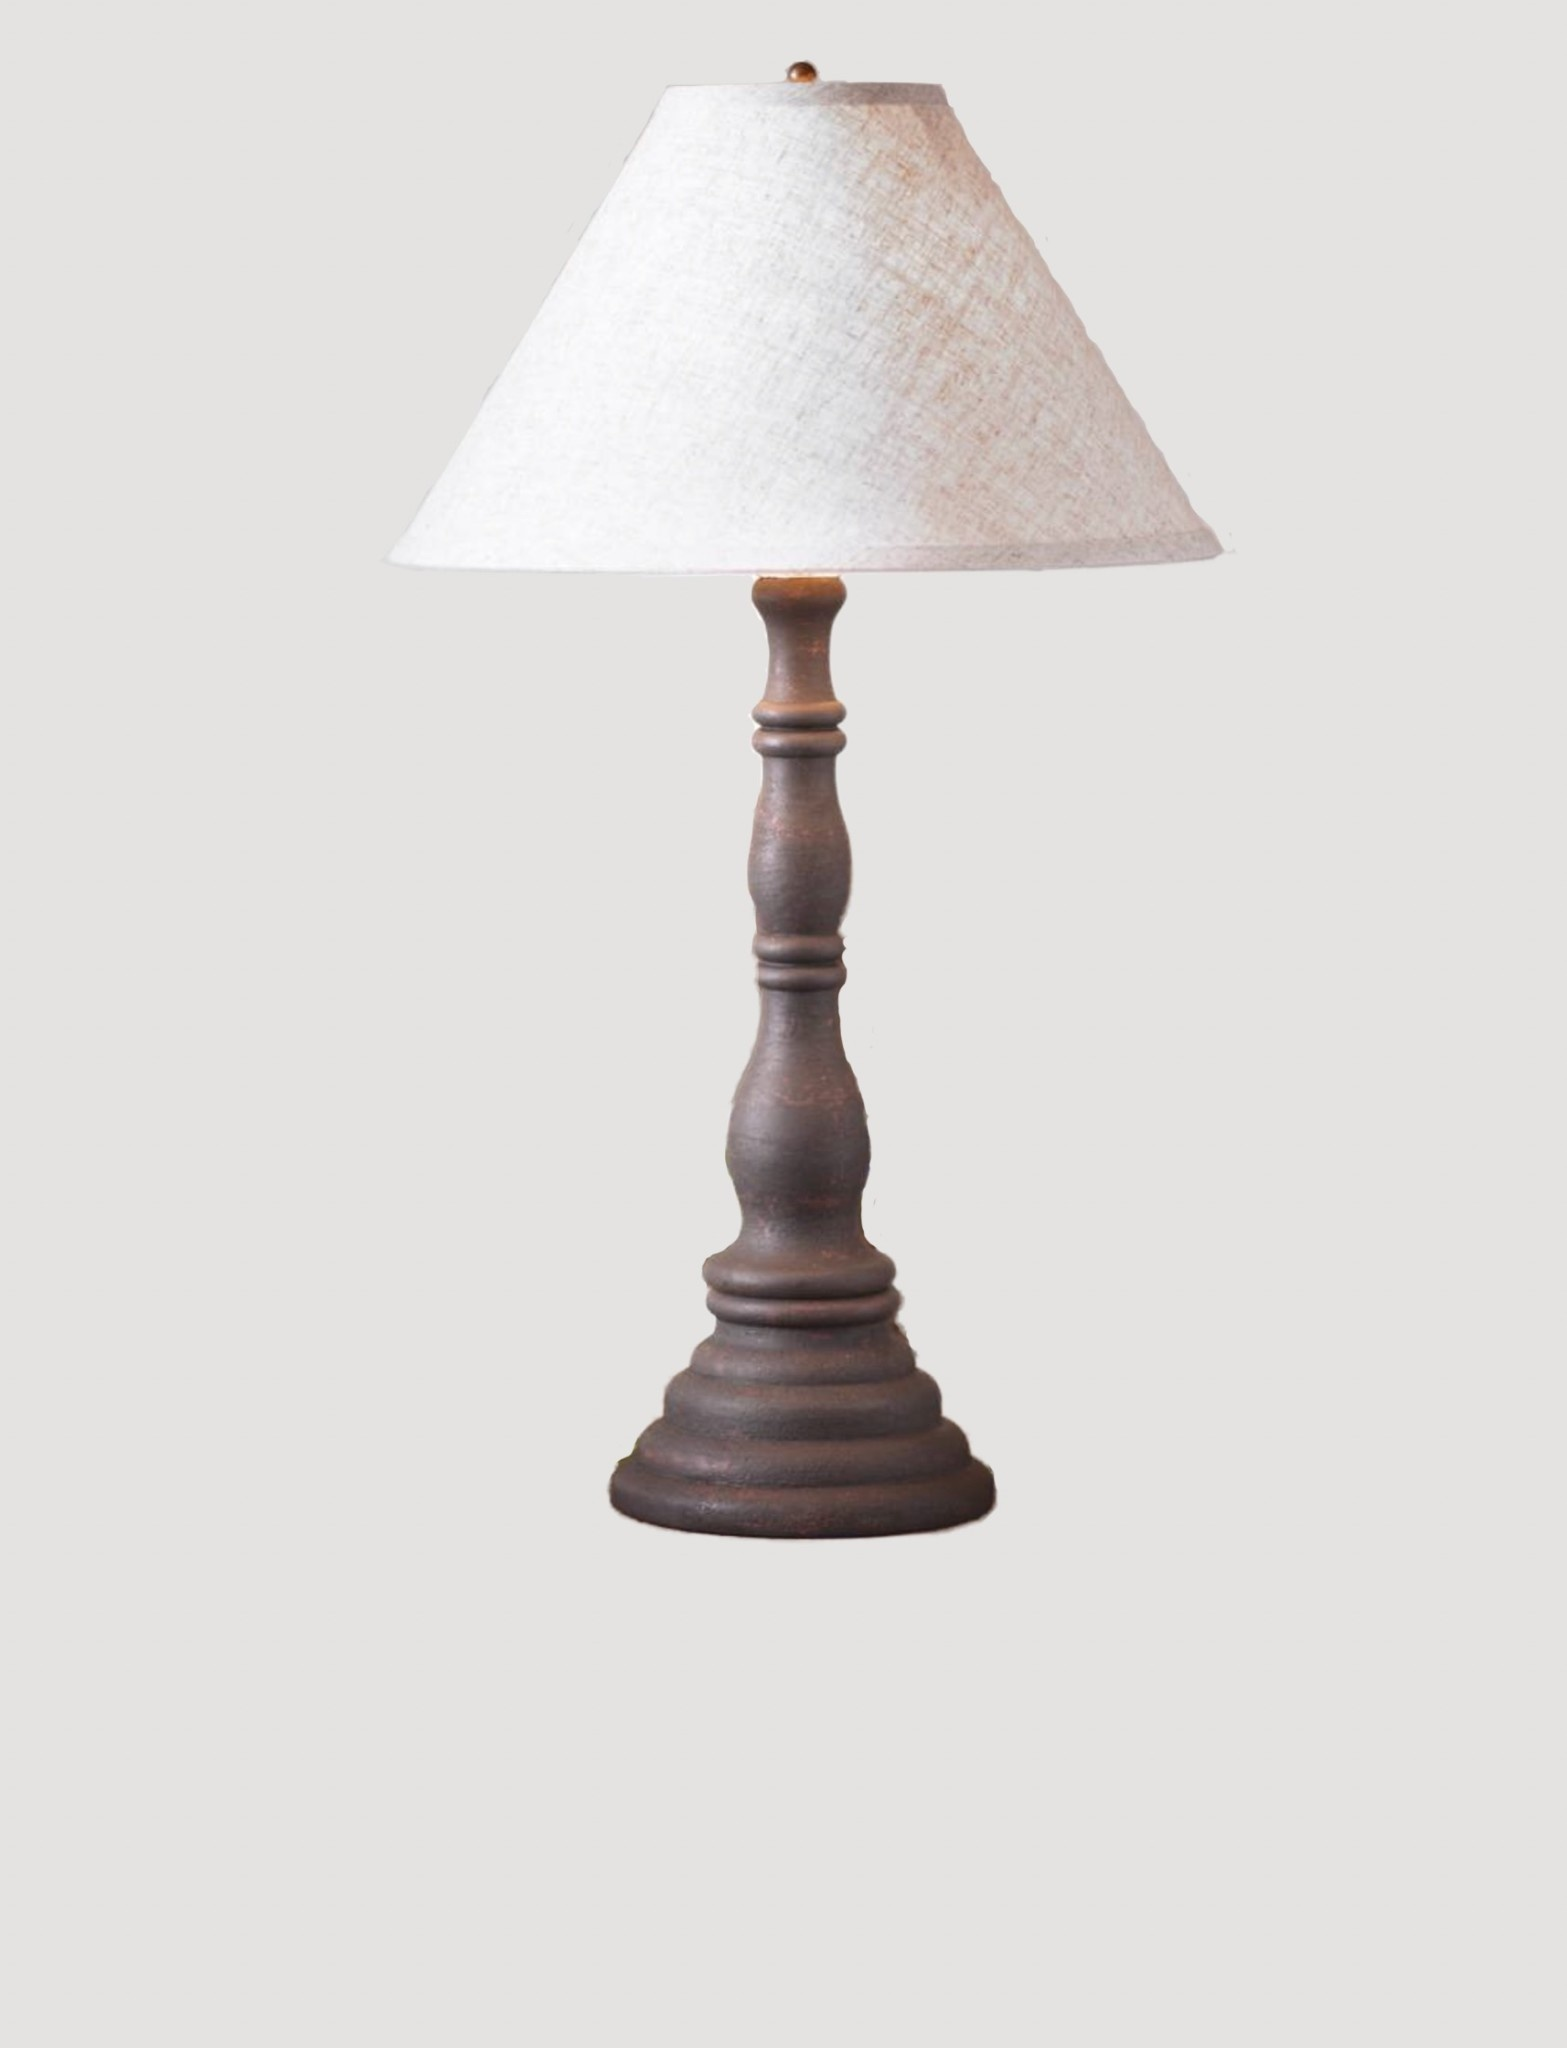 Irvin's Tinware Davenport Lamp with Ivory Linen Shade in Hartford